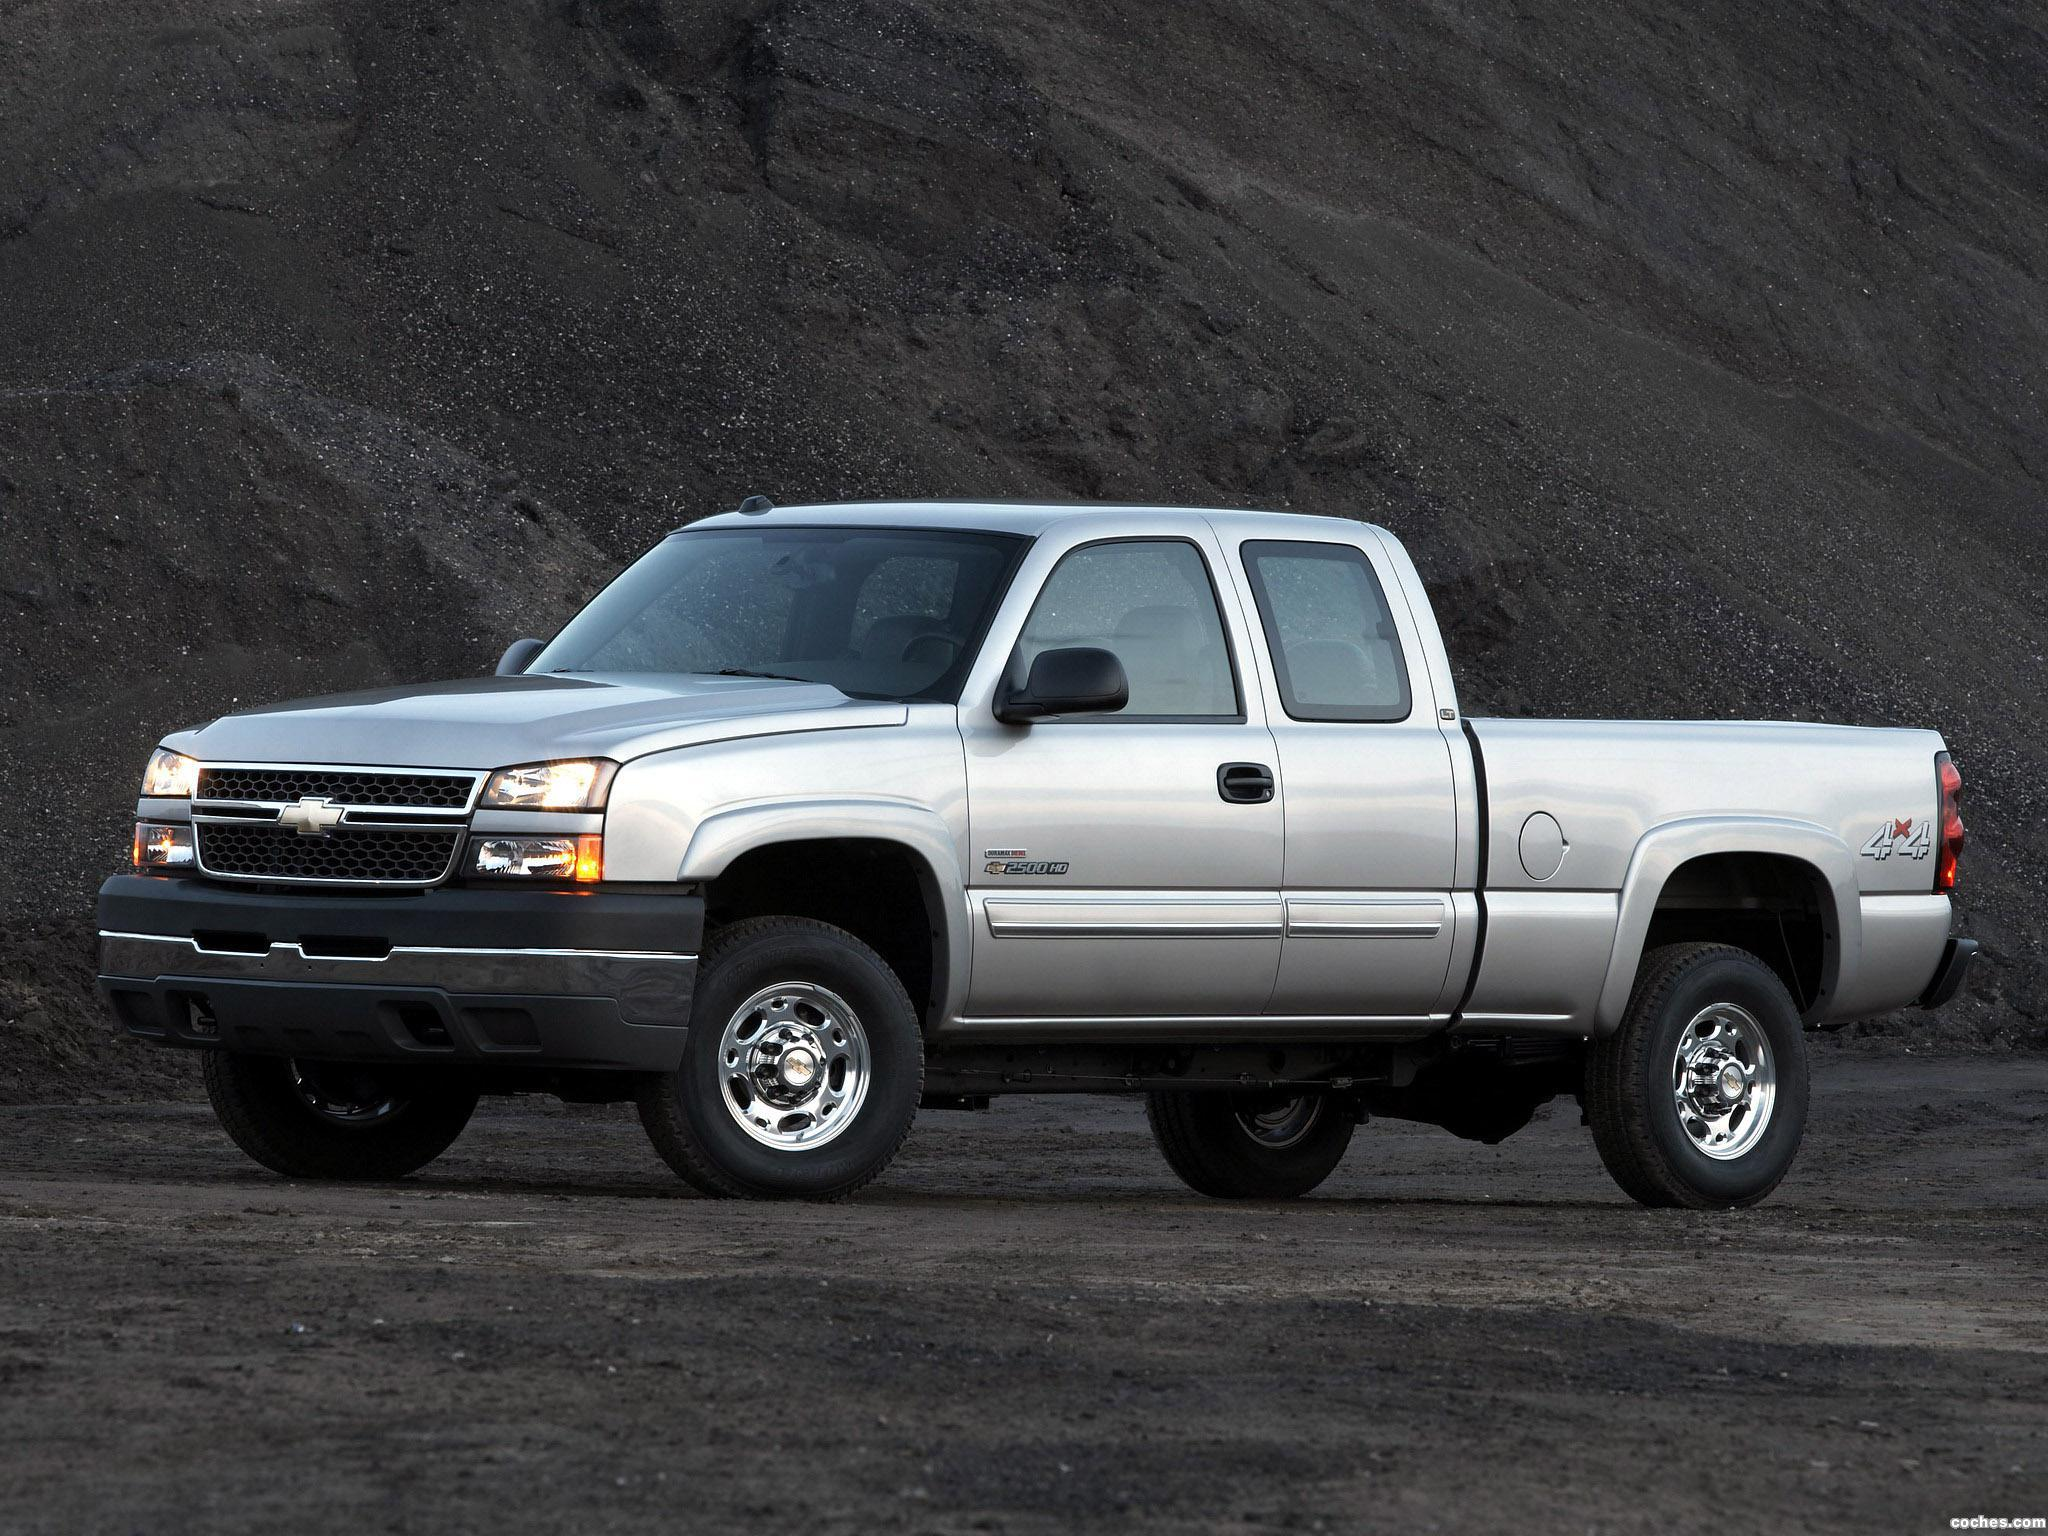 fotos de chevrolet silverado 2500 hd extended cab 2002. Black Bedroom Furniture Sets. Home Design Ideas